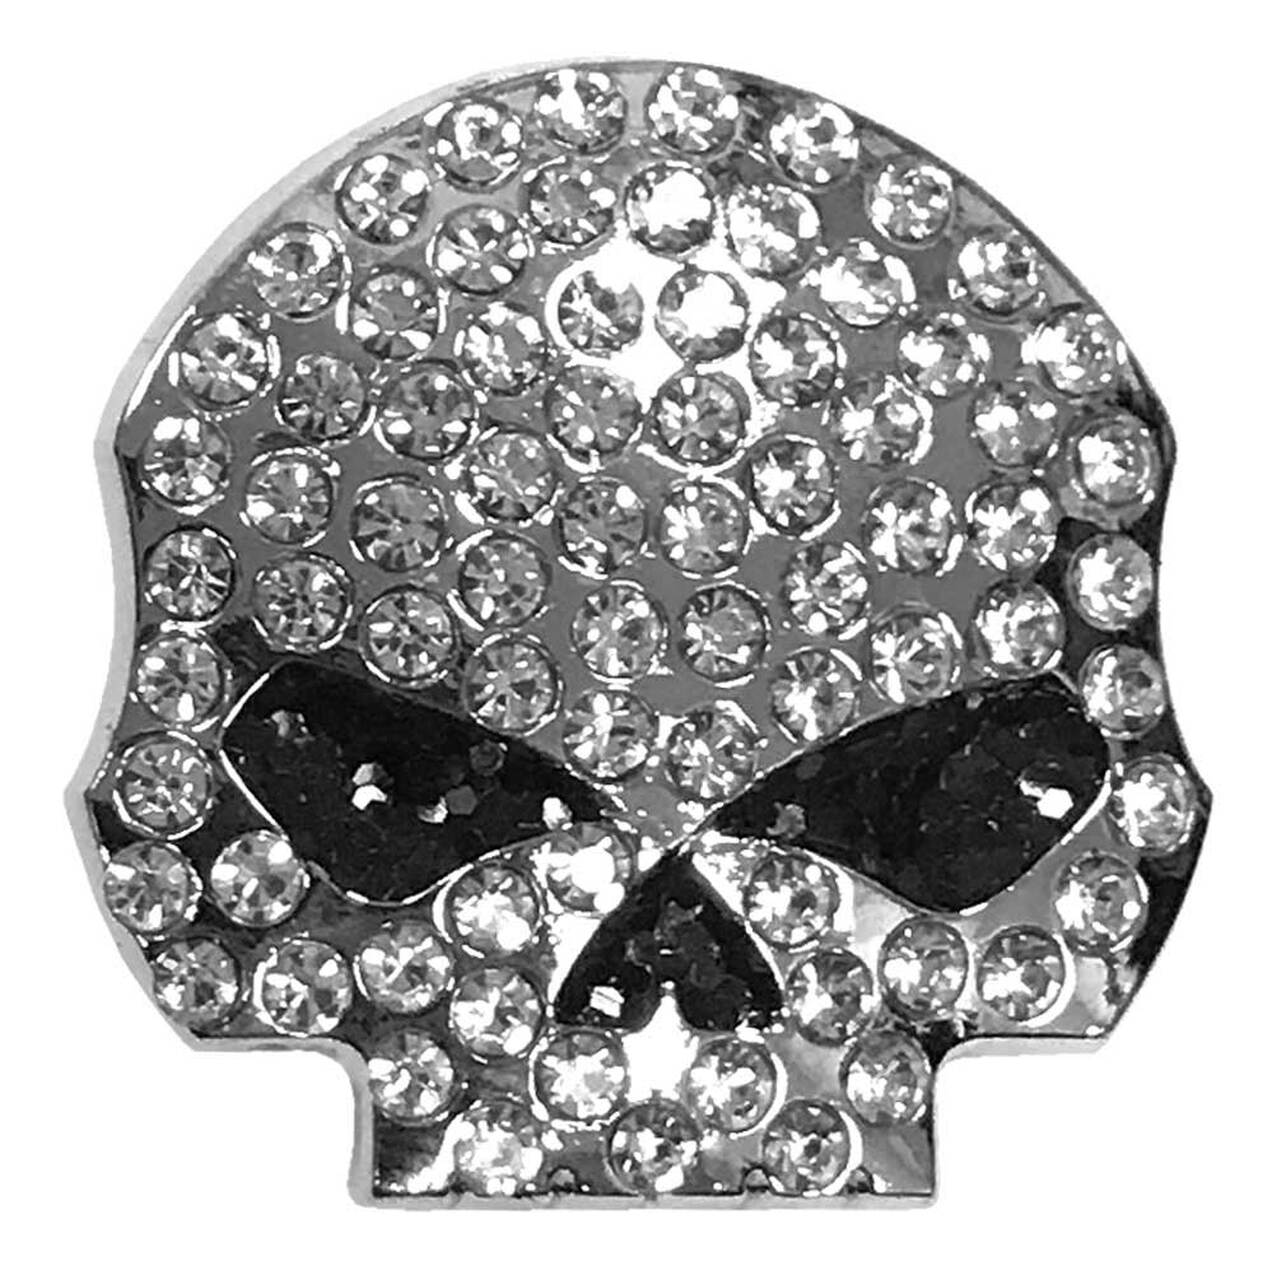 HARLEY DAVIDSON PIN, STUDDED SKULL, 3D DIE CAT, POLISHED SILVER, WITH RHINEST